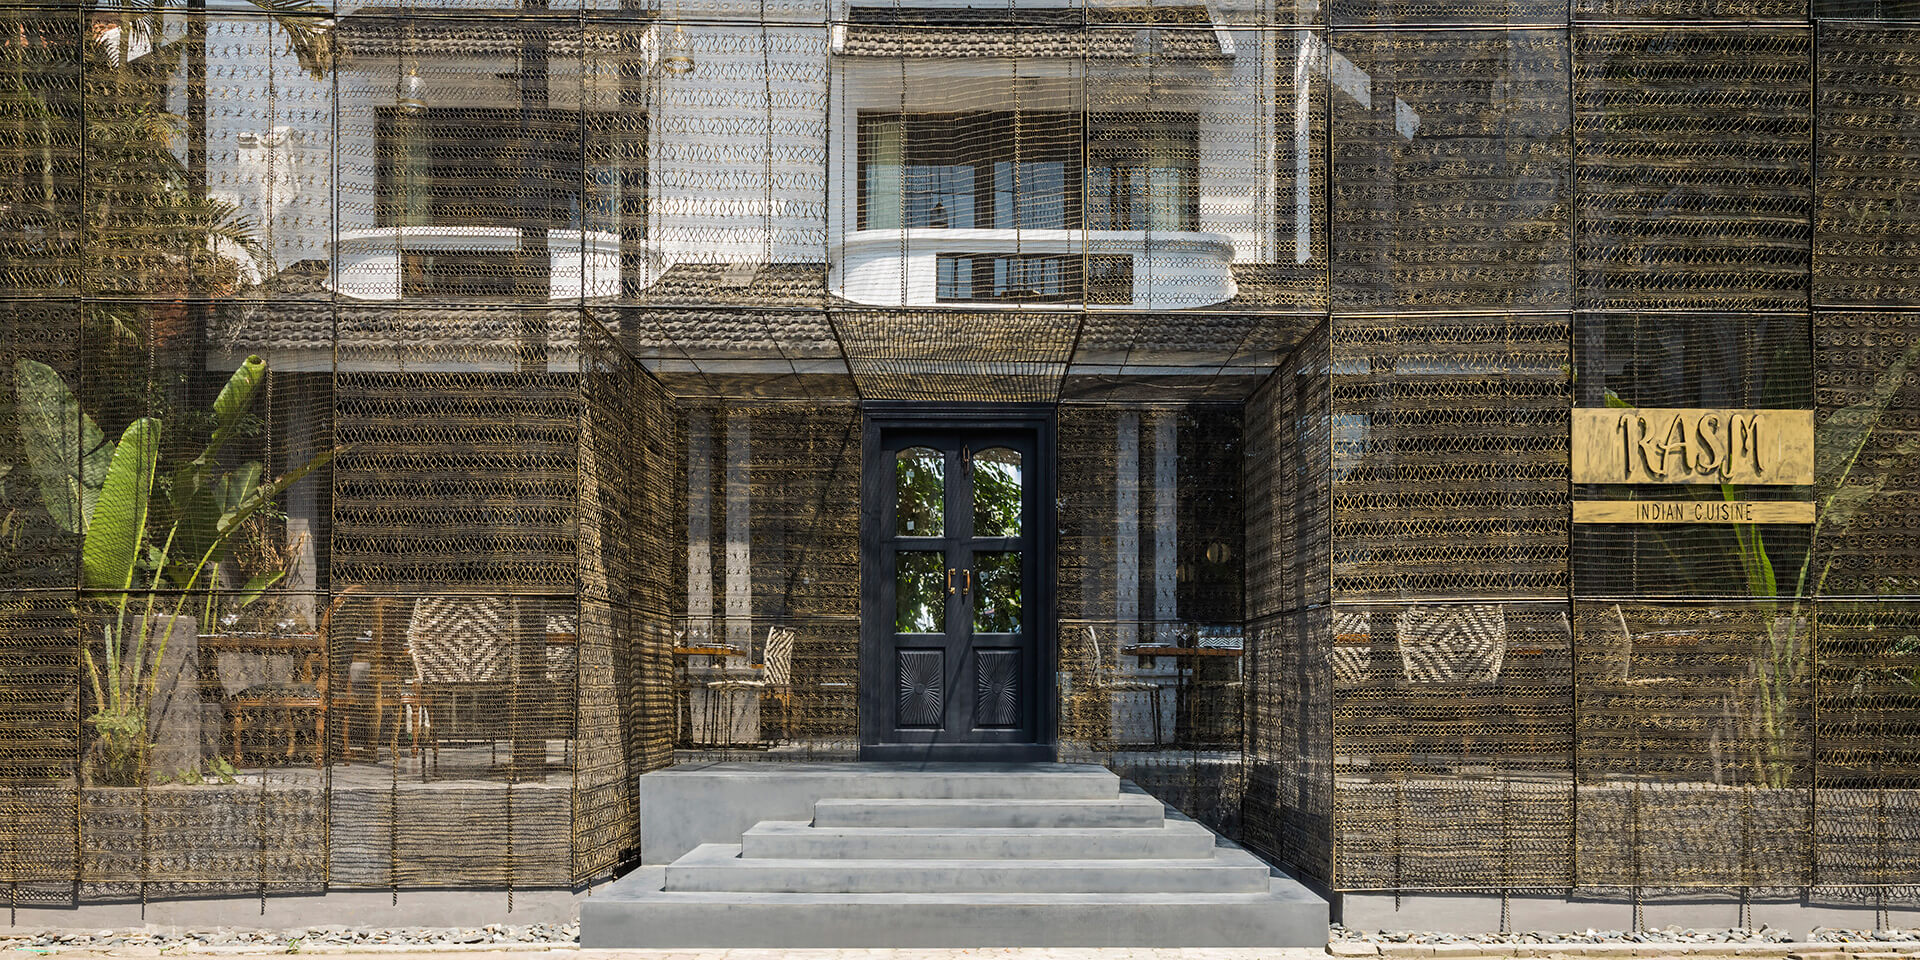 Rasm restaurant was created out of a façade of twin houses | RASM restaurant | Studio VDGA | STIRworld